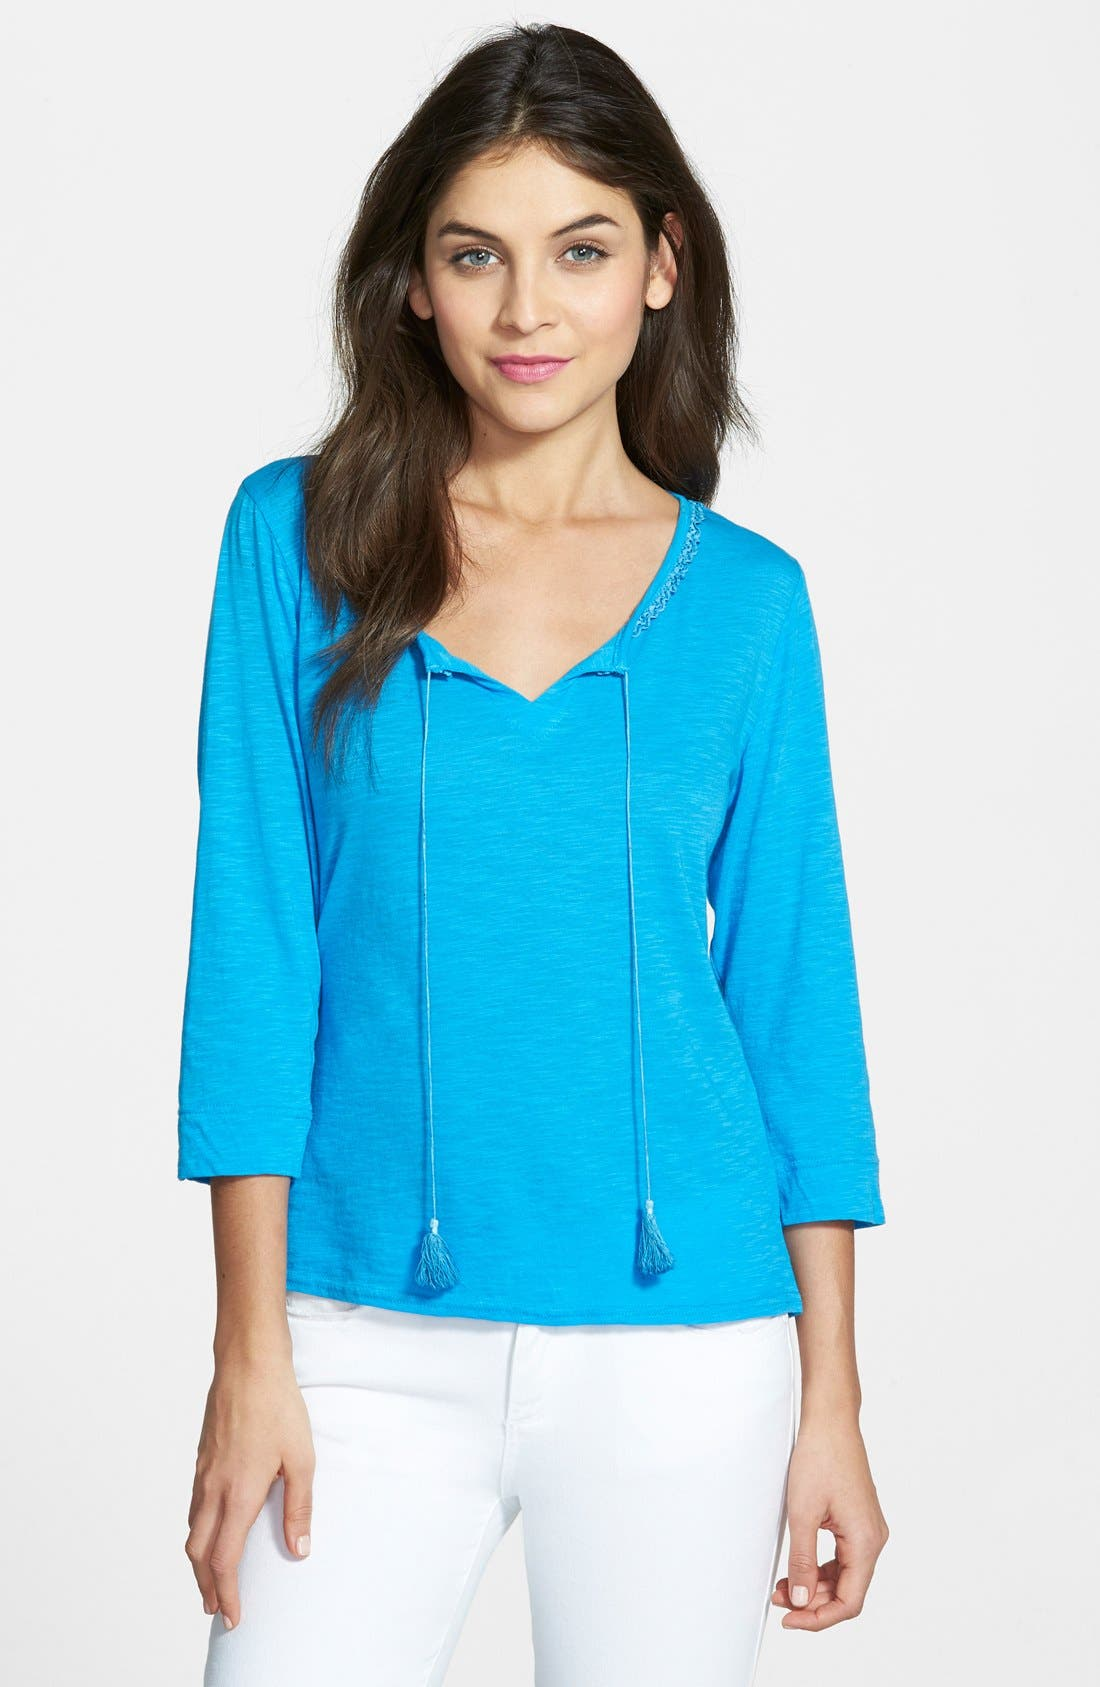 Main Image - Two by Vince Camuto Slub Jersey Tie Front Top